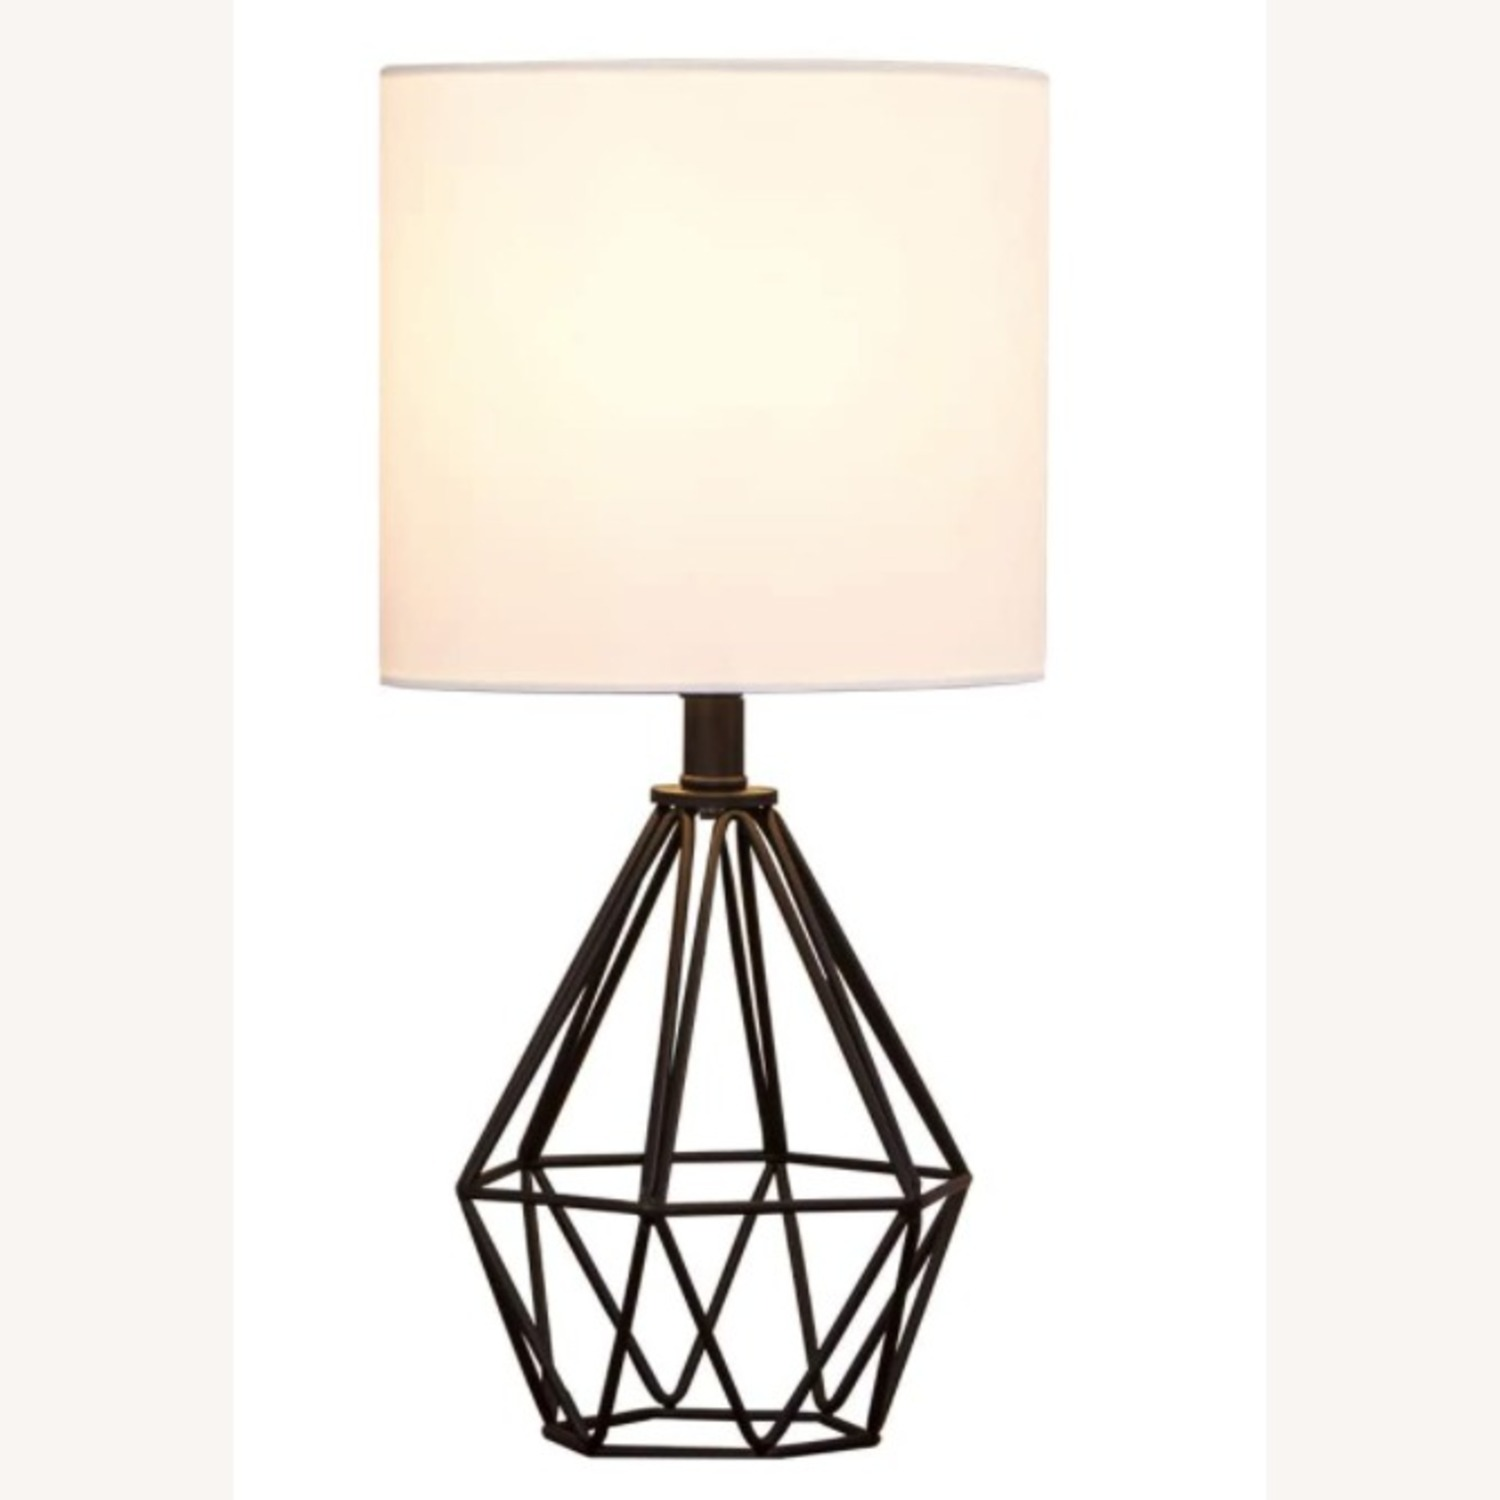 Modern Chic Desk Table Lamp with Black Metal Base - image-1